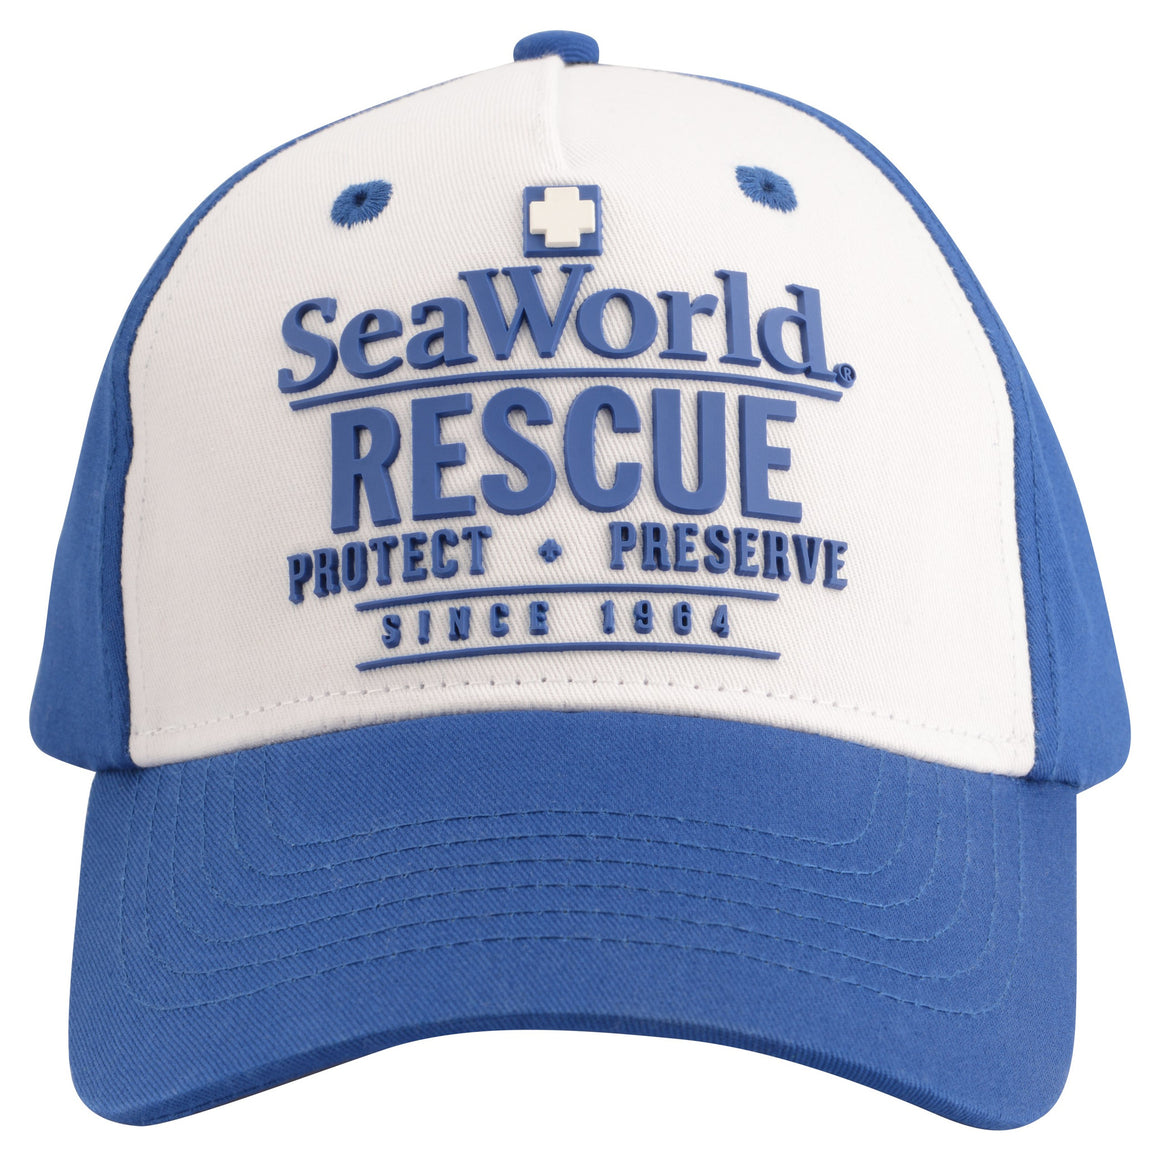 SeaWorld Rescue Youth Blue Baseball Cap